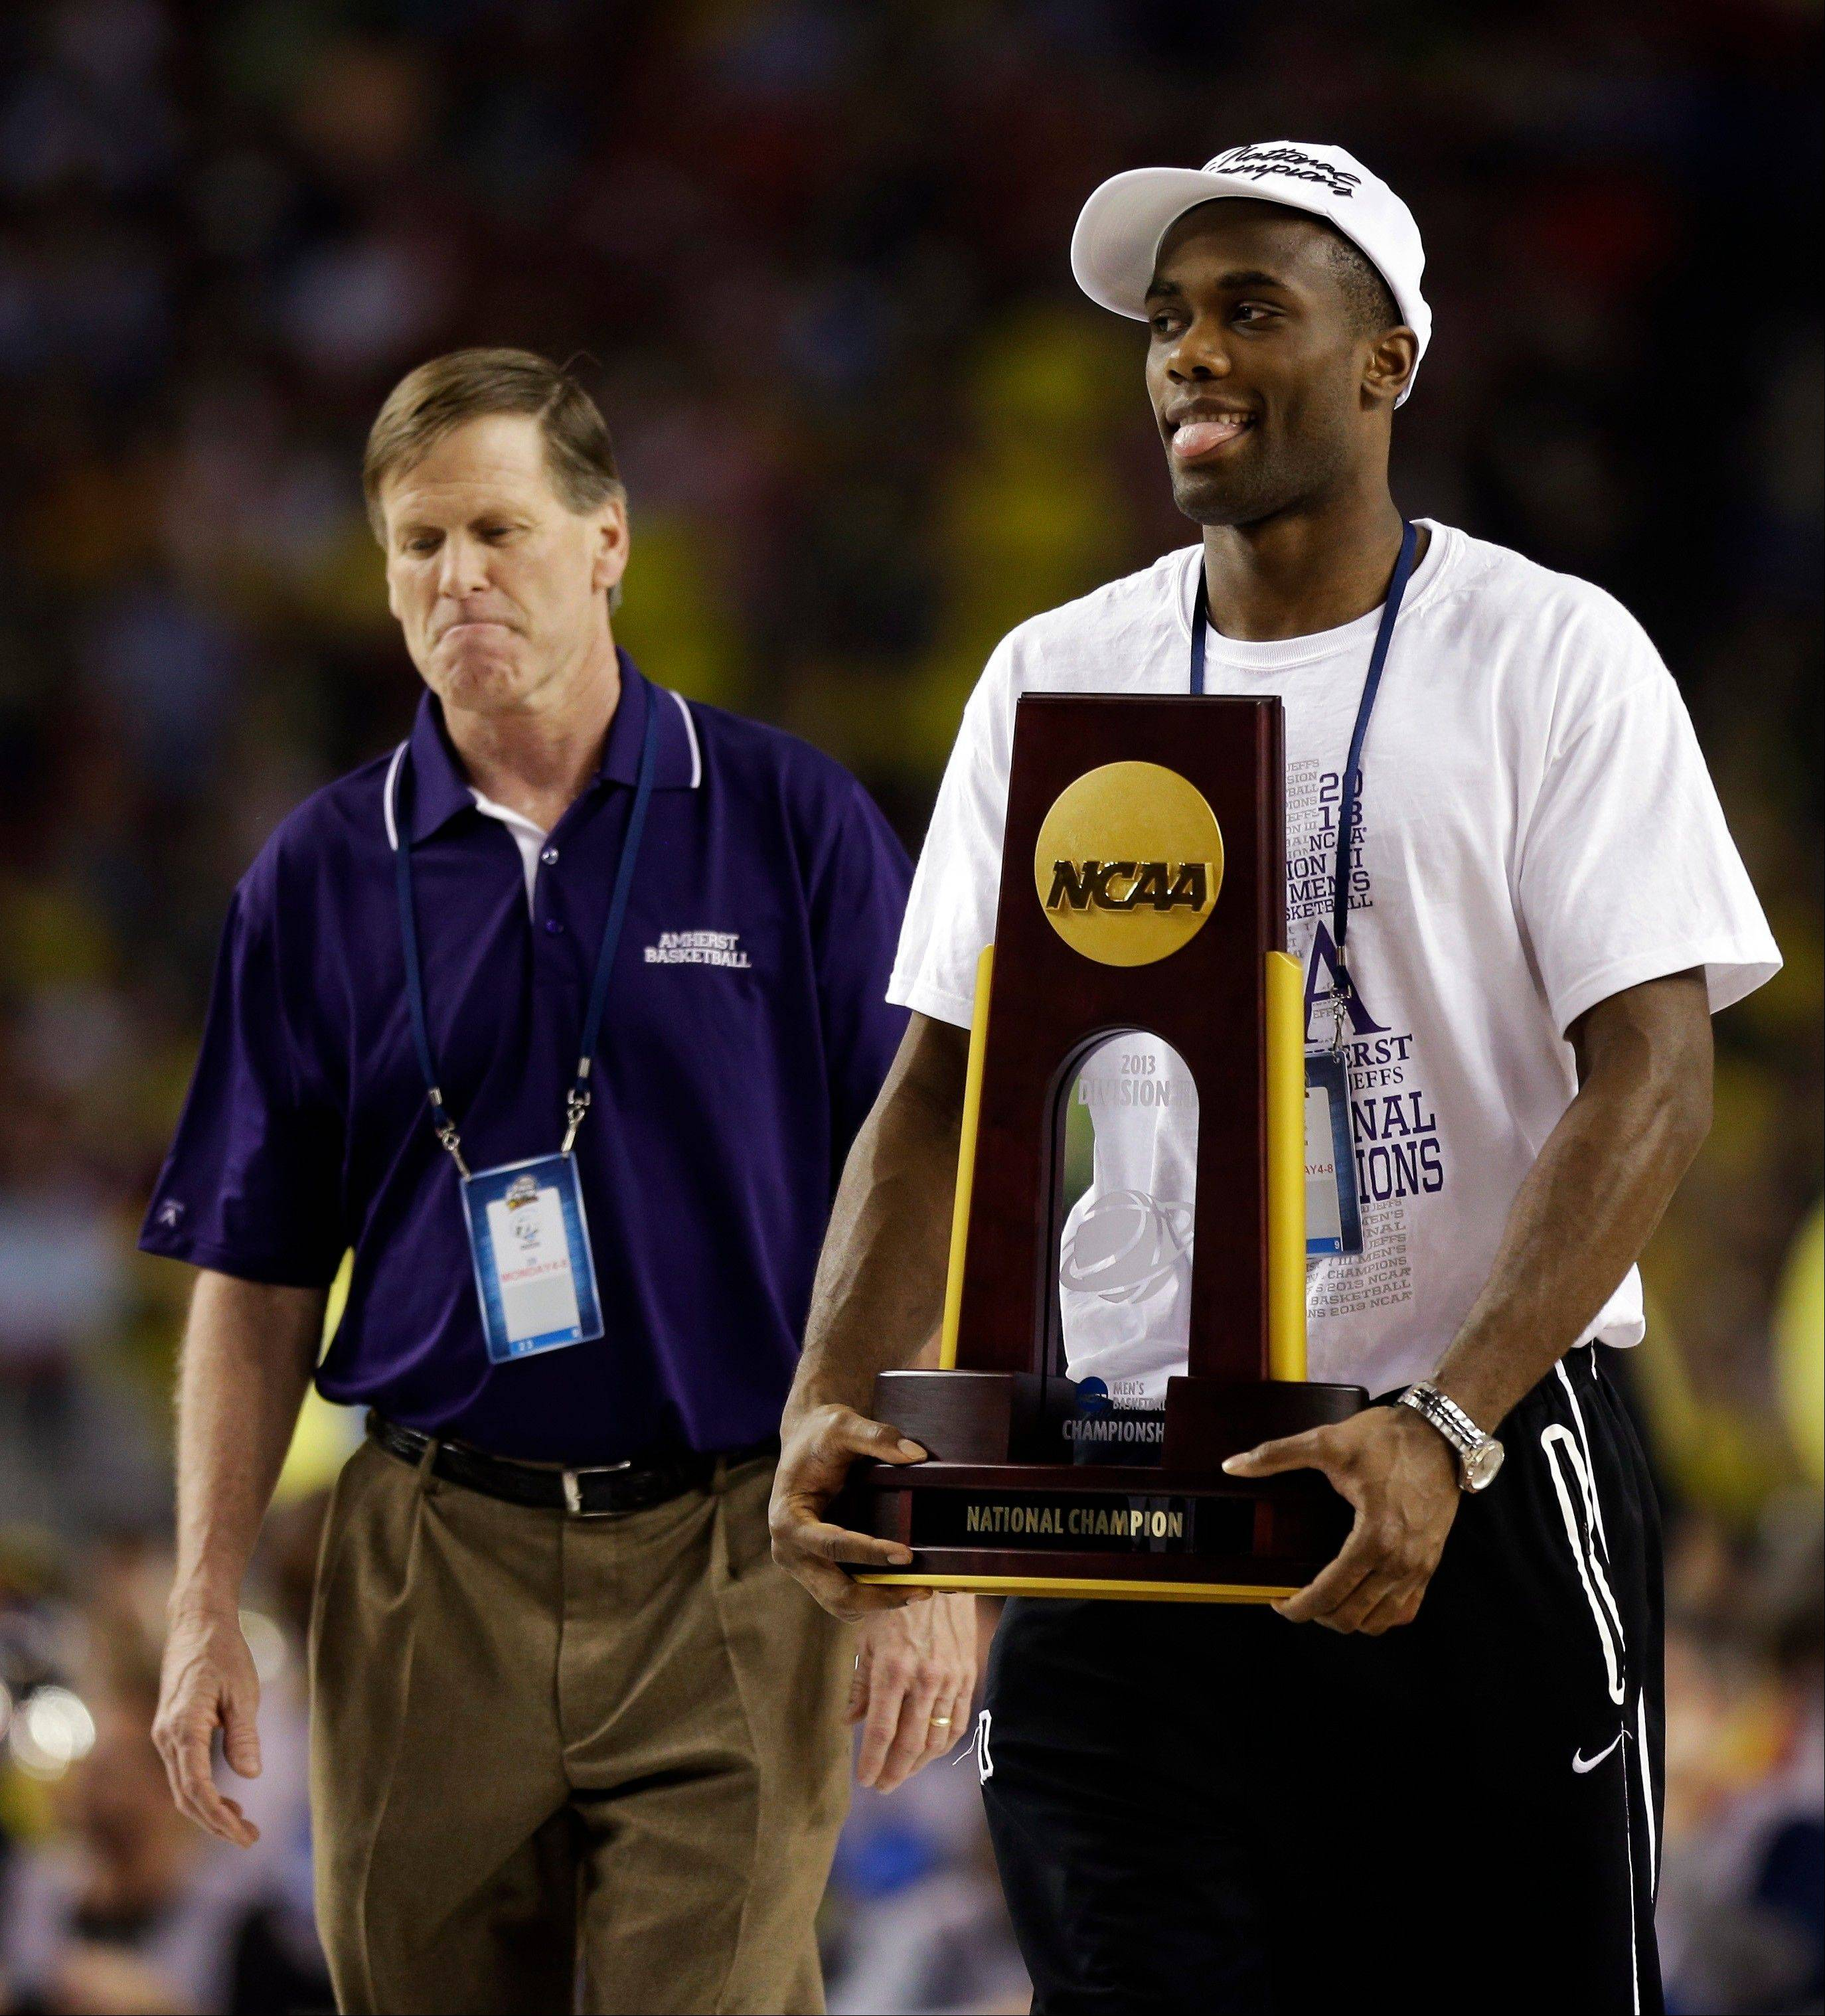 Amherst's Allen Williamson, right, carries the trophy alongside head coach David Hixon as the team is honored during halftime of the NCAA Final Four tournament college basketball championship game between Michigan and Louisville, Monday, April 8, 2013, in Atlanta. Amherst defeated Mary Hardin-Baylor 87-70 on Sunday, April 7, to win the NCAA Division III national championship college basketball game.